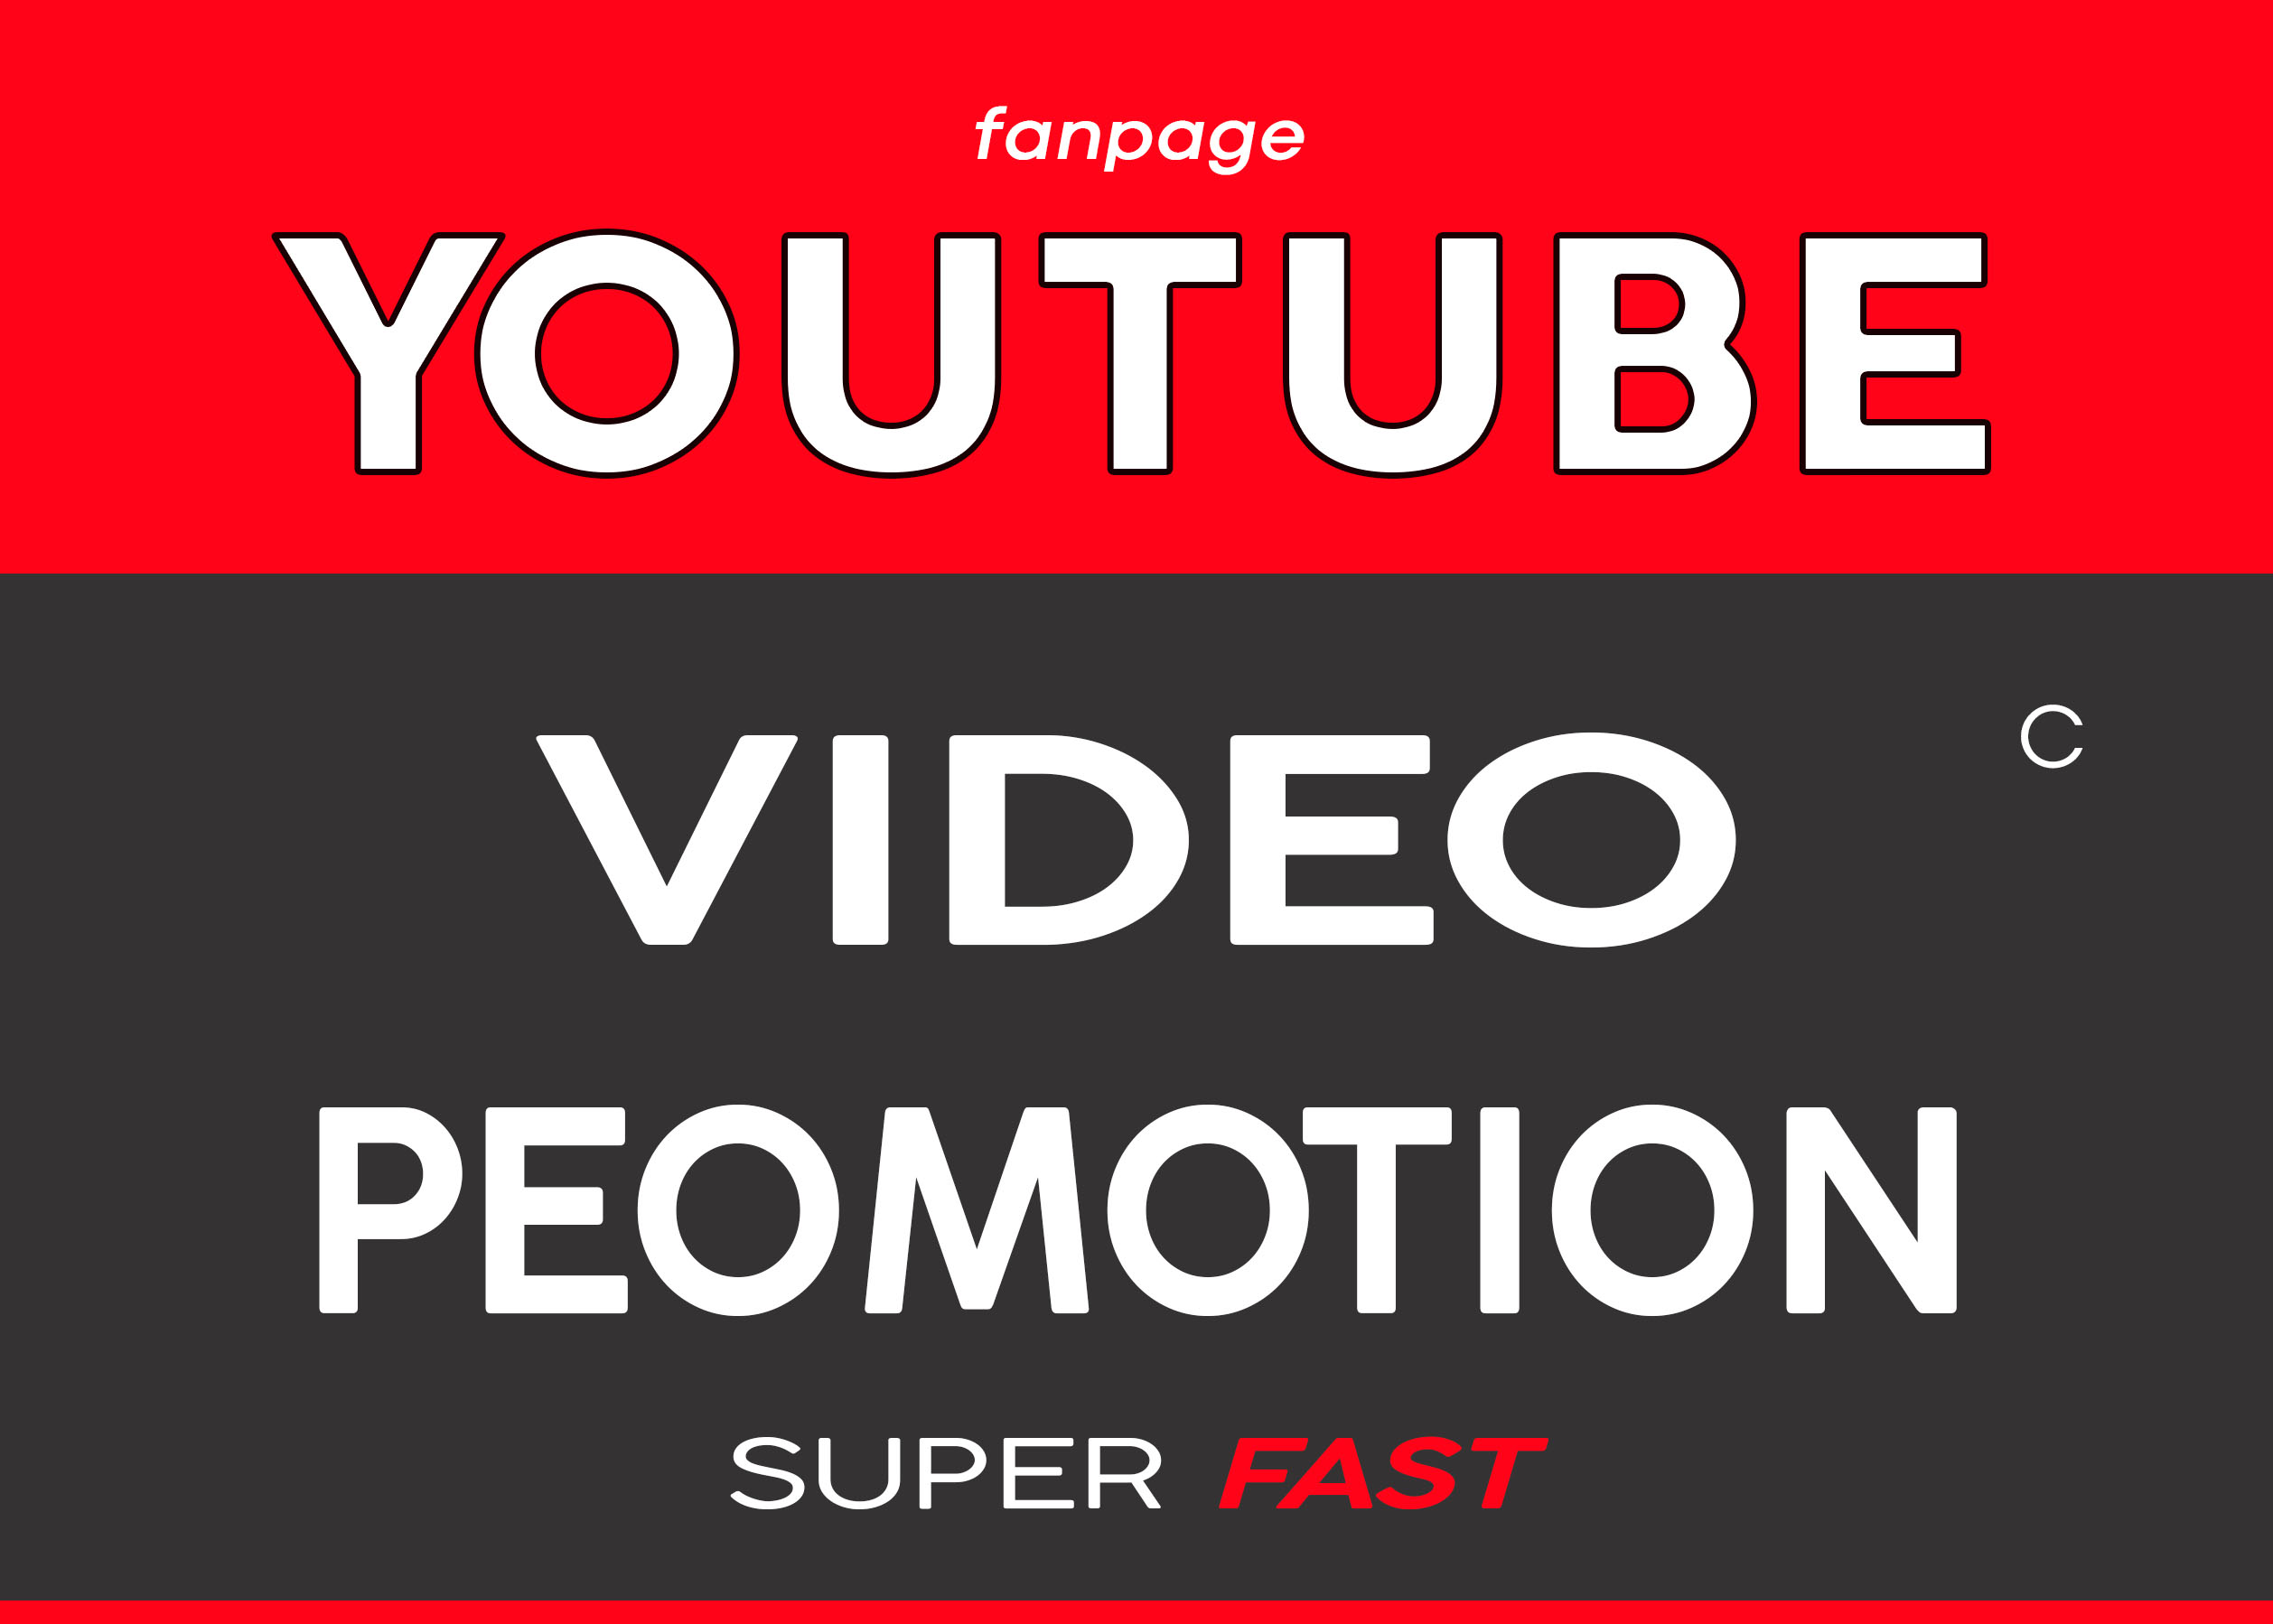 YOUTUBE VIDEO PROMOTION AND REAL MARKETING SERVICE